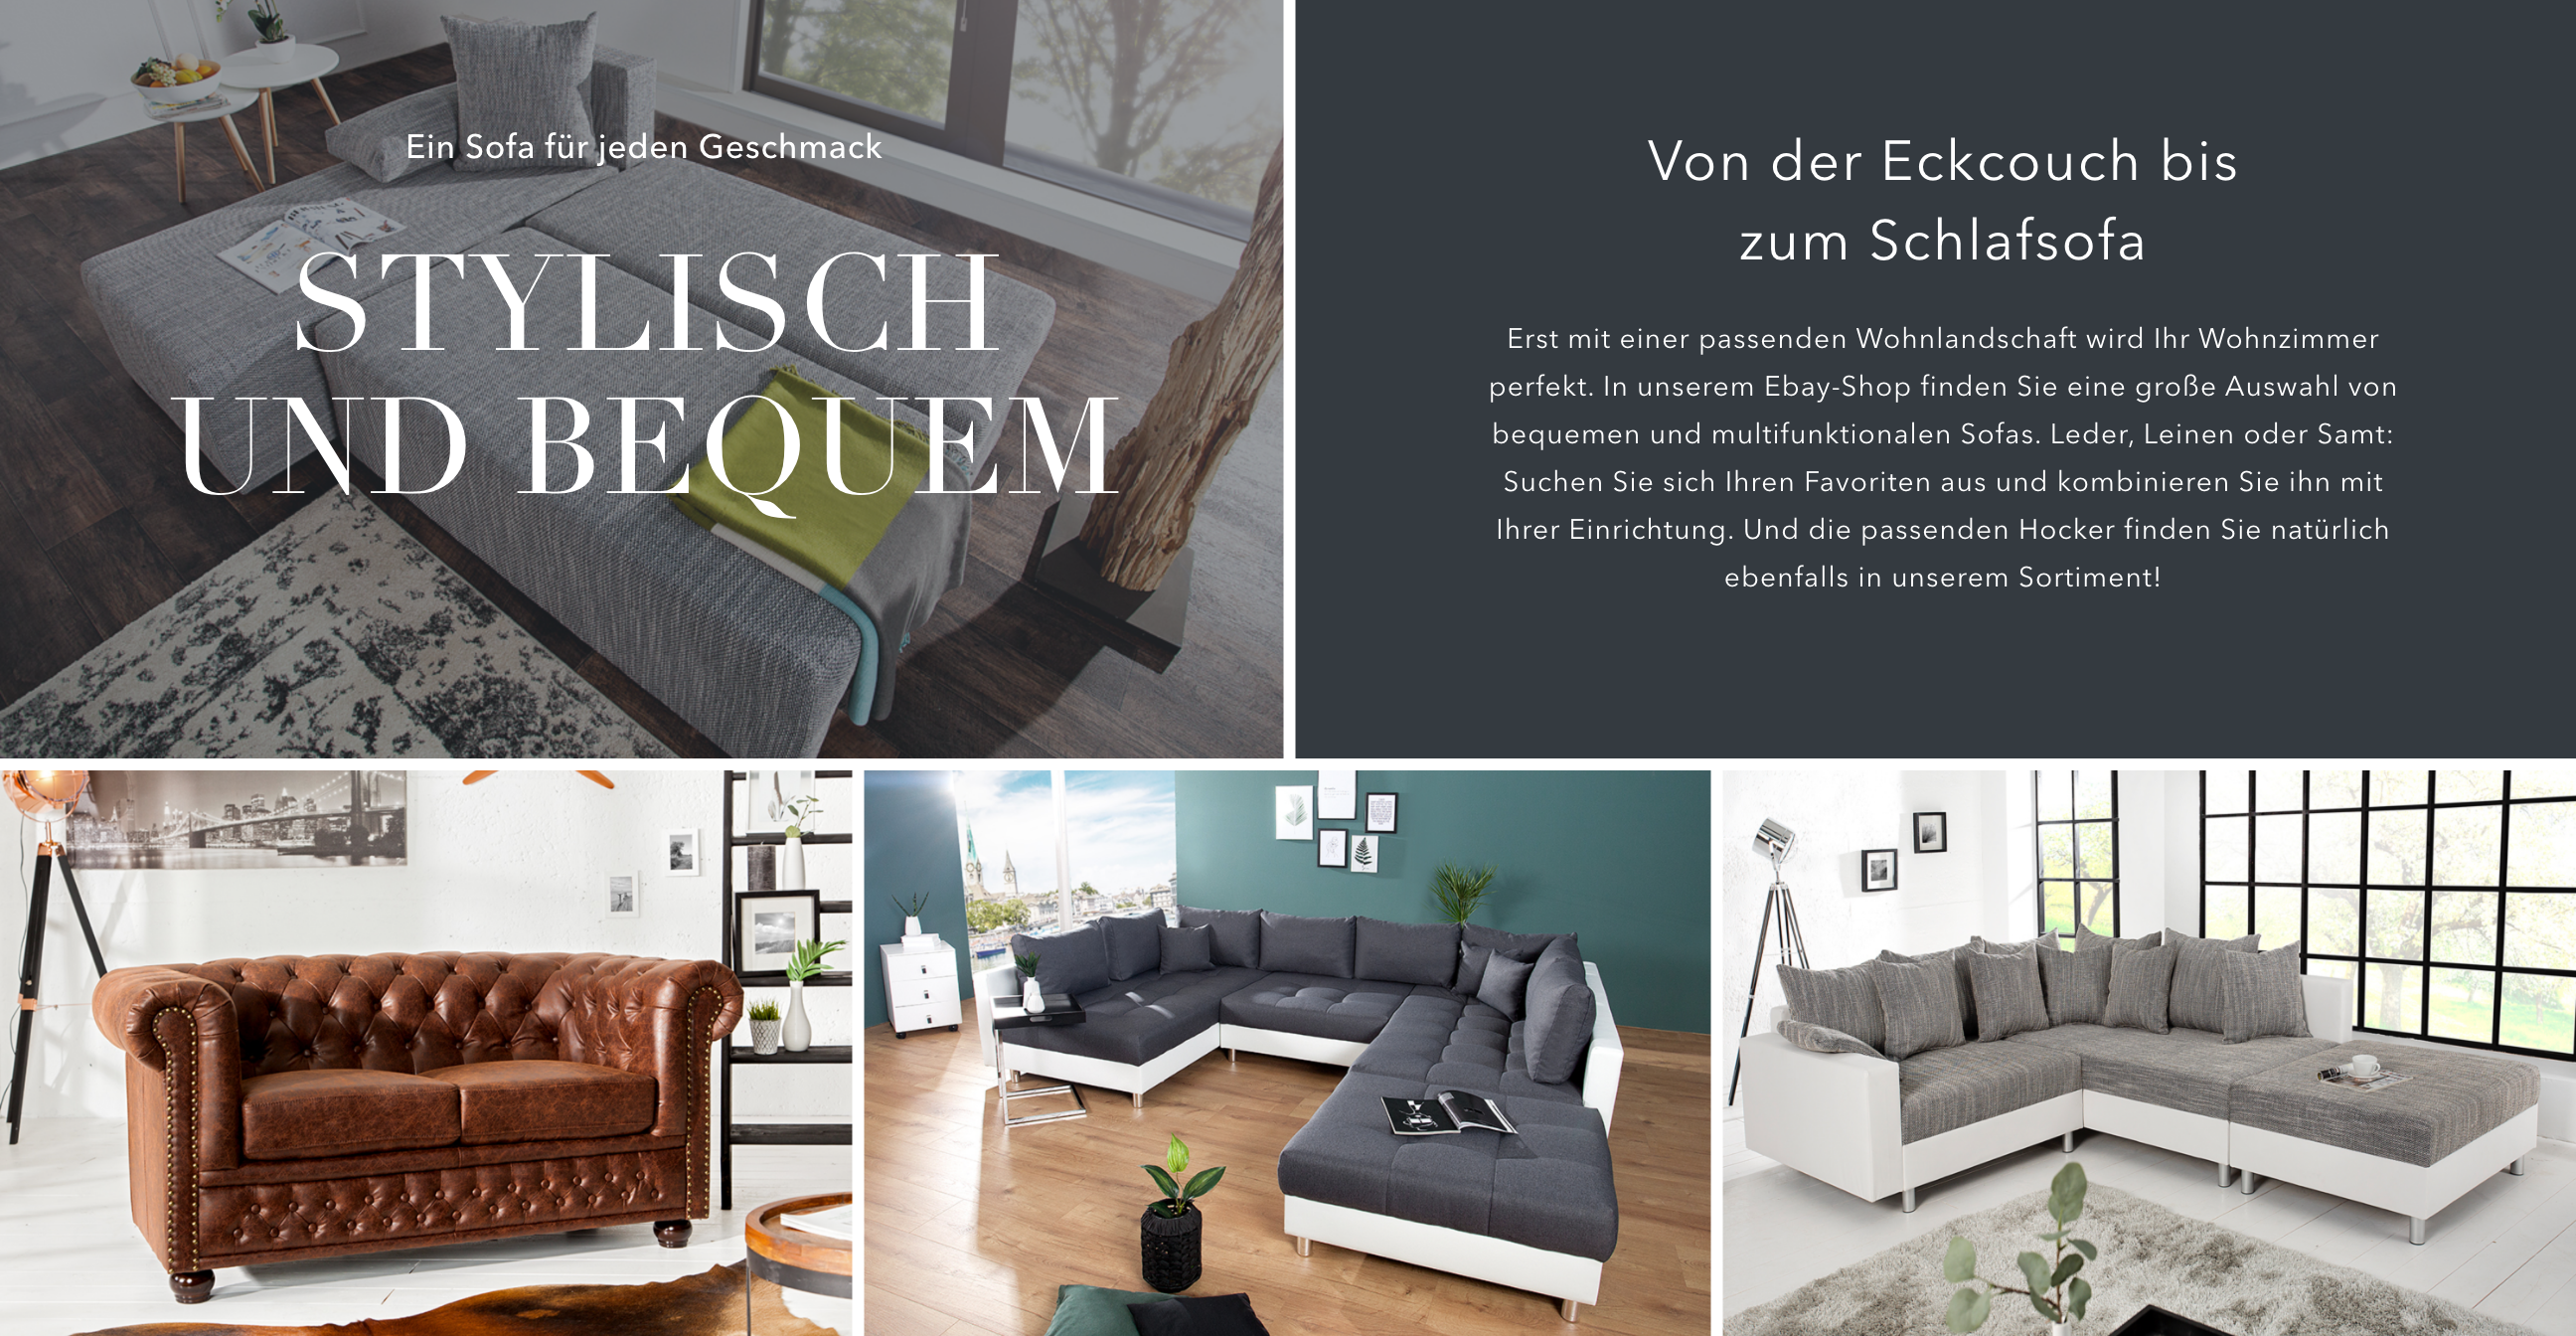 design couchtisch 2er set big fusion matt schwarz chrom geb rstet beistelltisch ebay. Black Bedroom Furniture Sets. Home Design Ideas